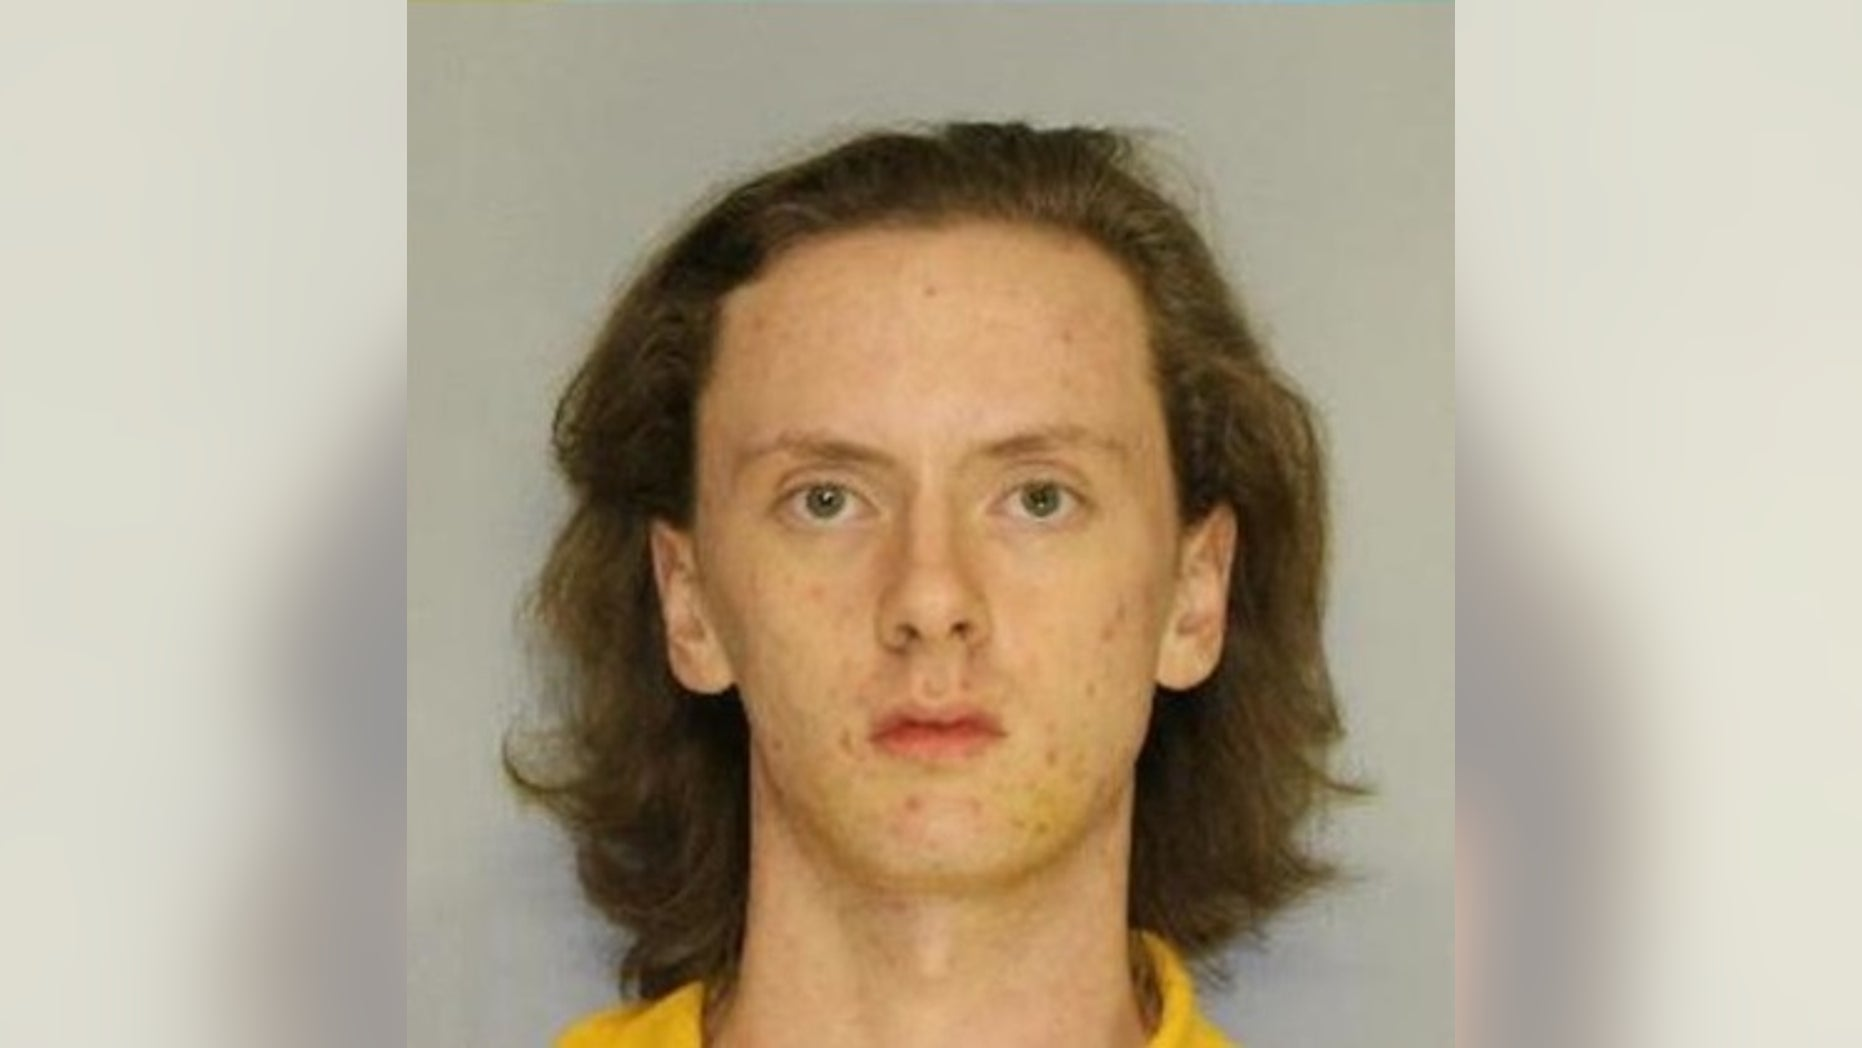 Talon Lowery, 19, was charged in the murder of Bryan Ramirez after he posted a video of the shooting on Snapchat.